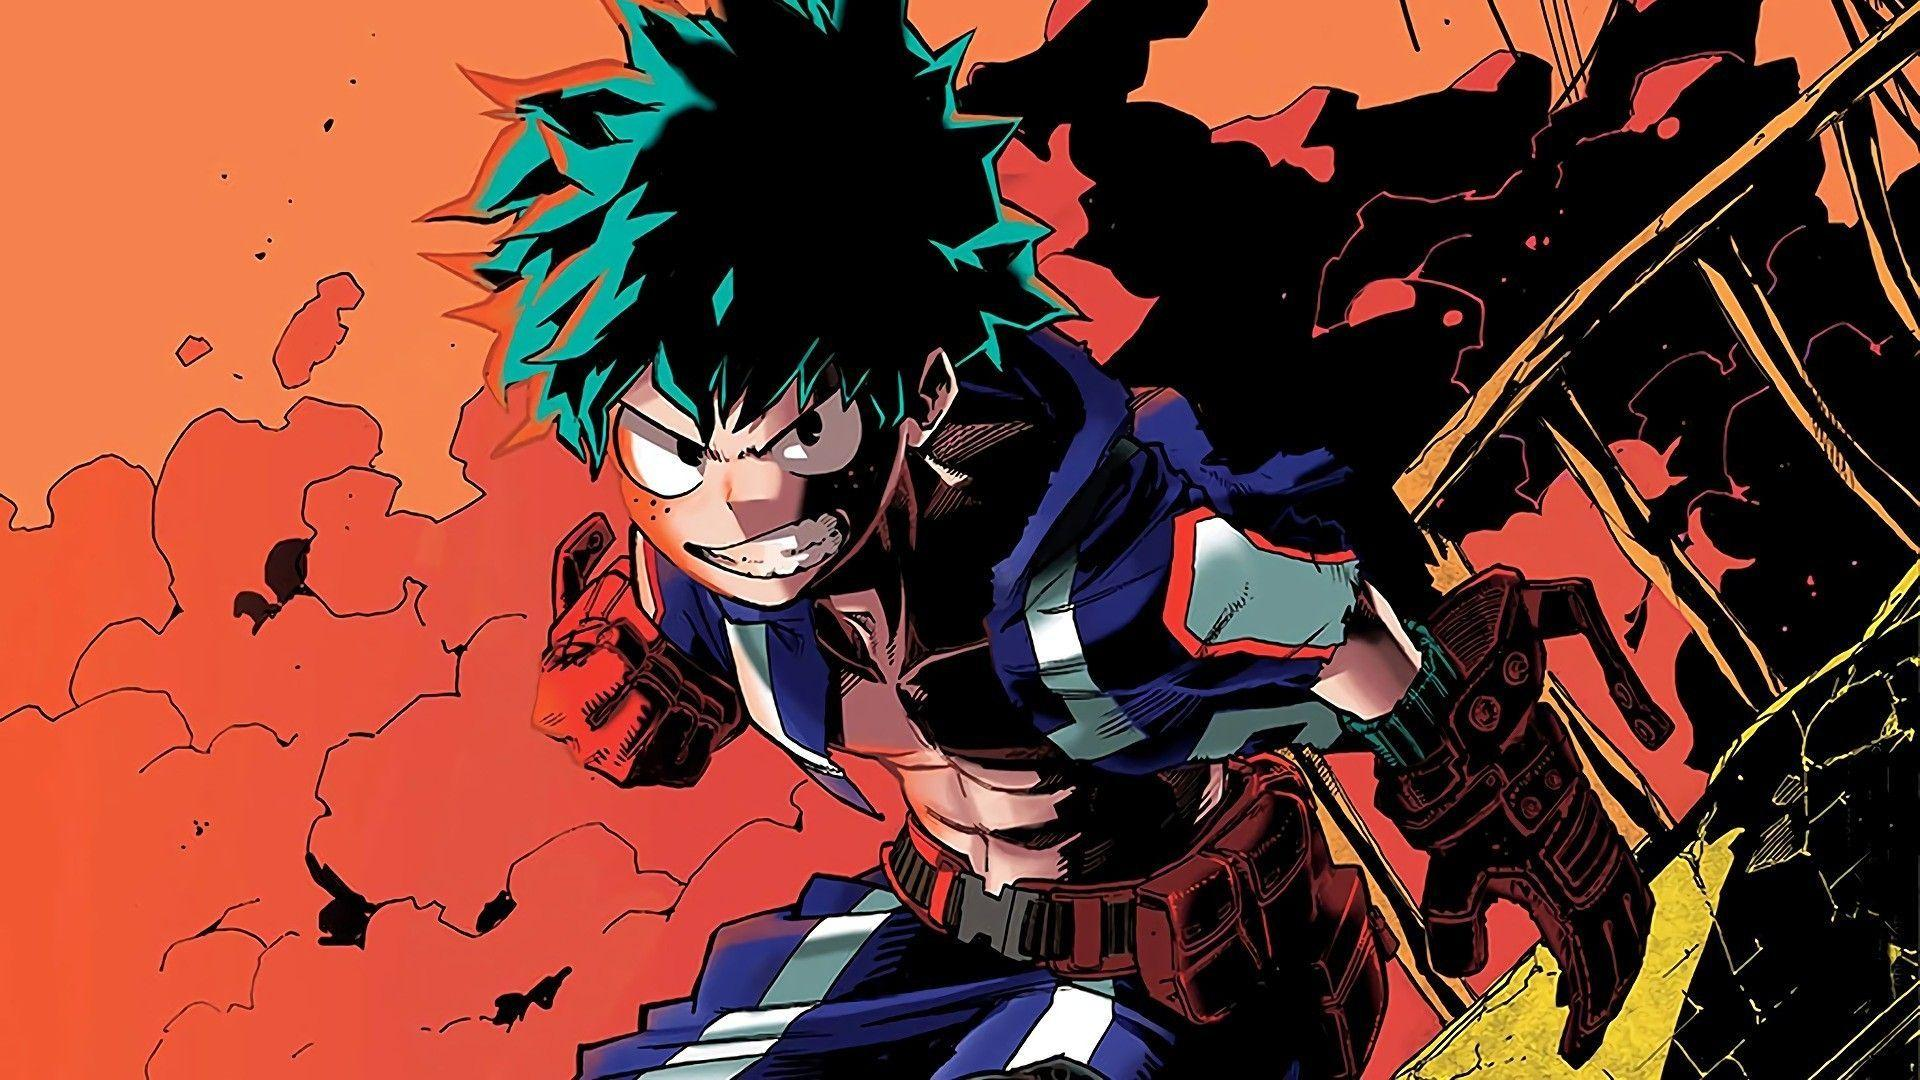 Bnha Anime Wallpapers Wallpaper Cave